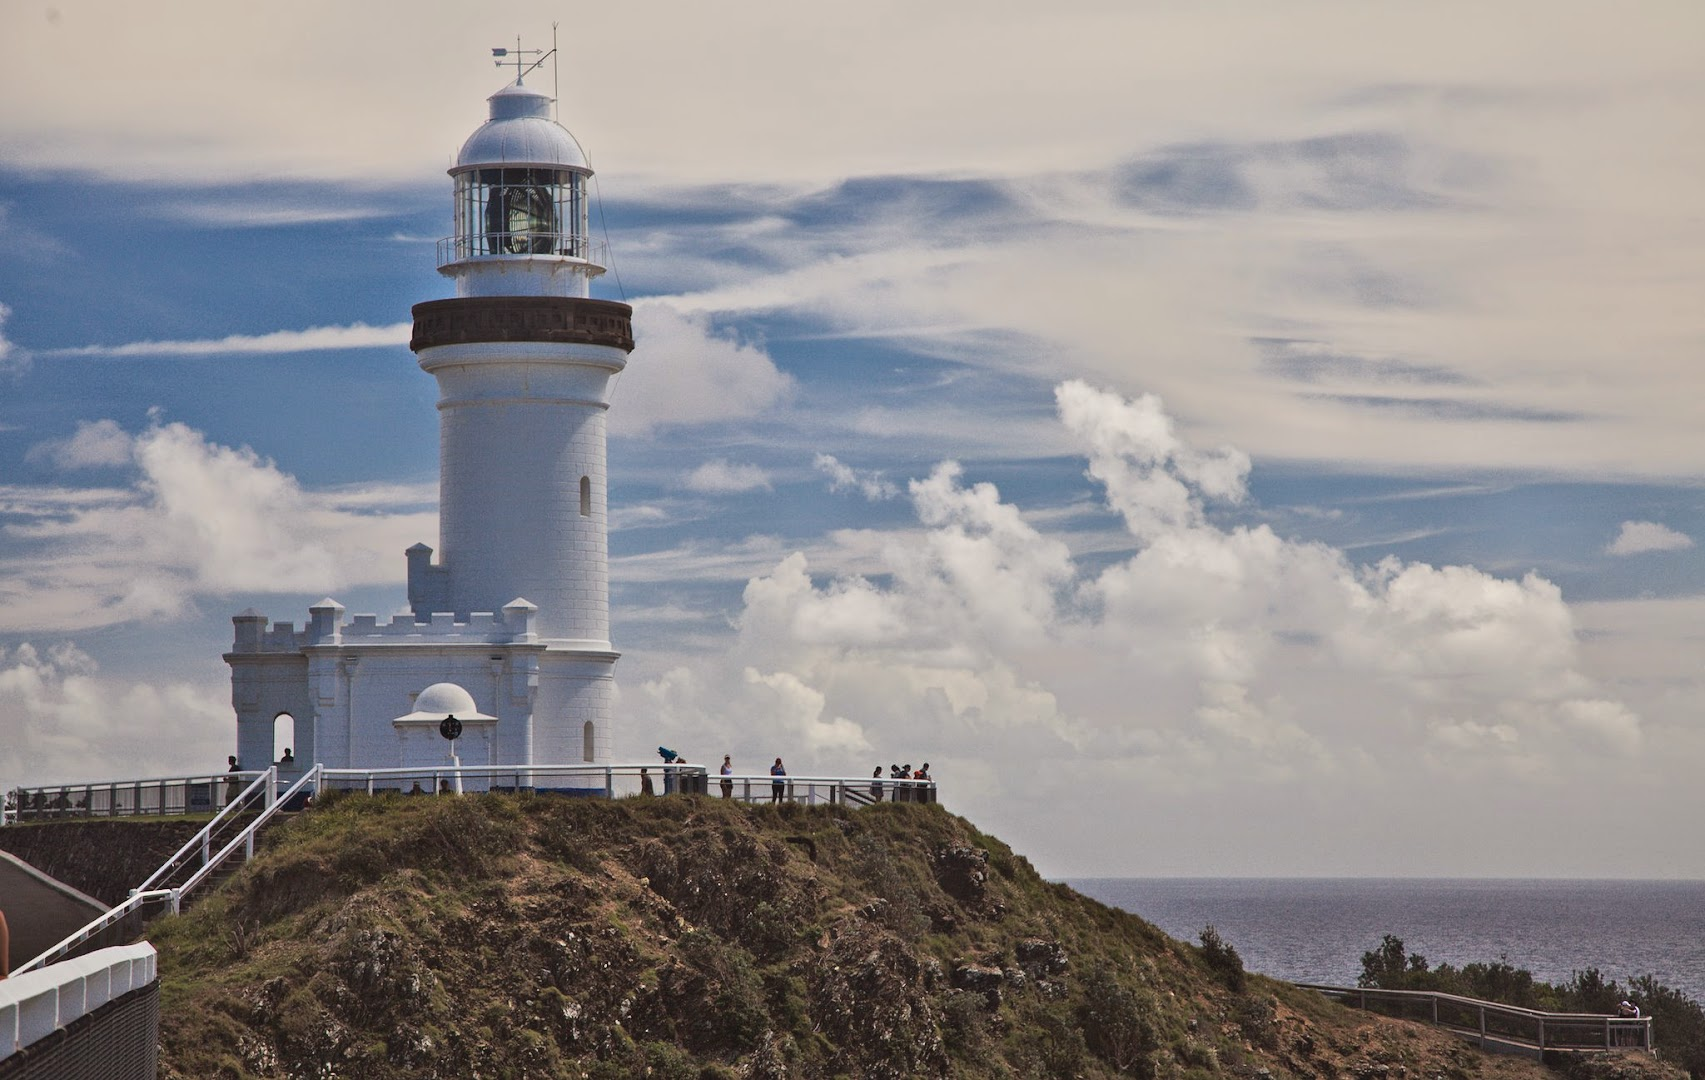 Autstralia's westernmost point, near Byron Bay